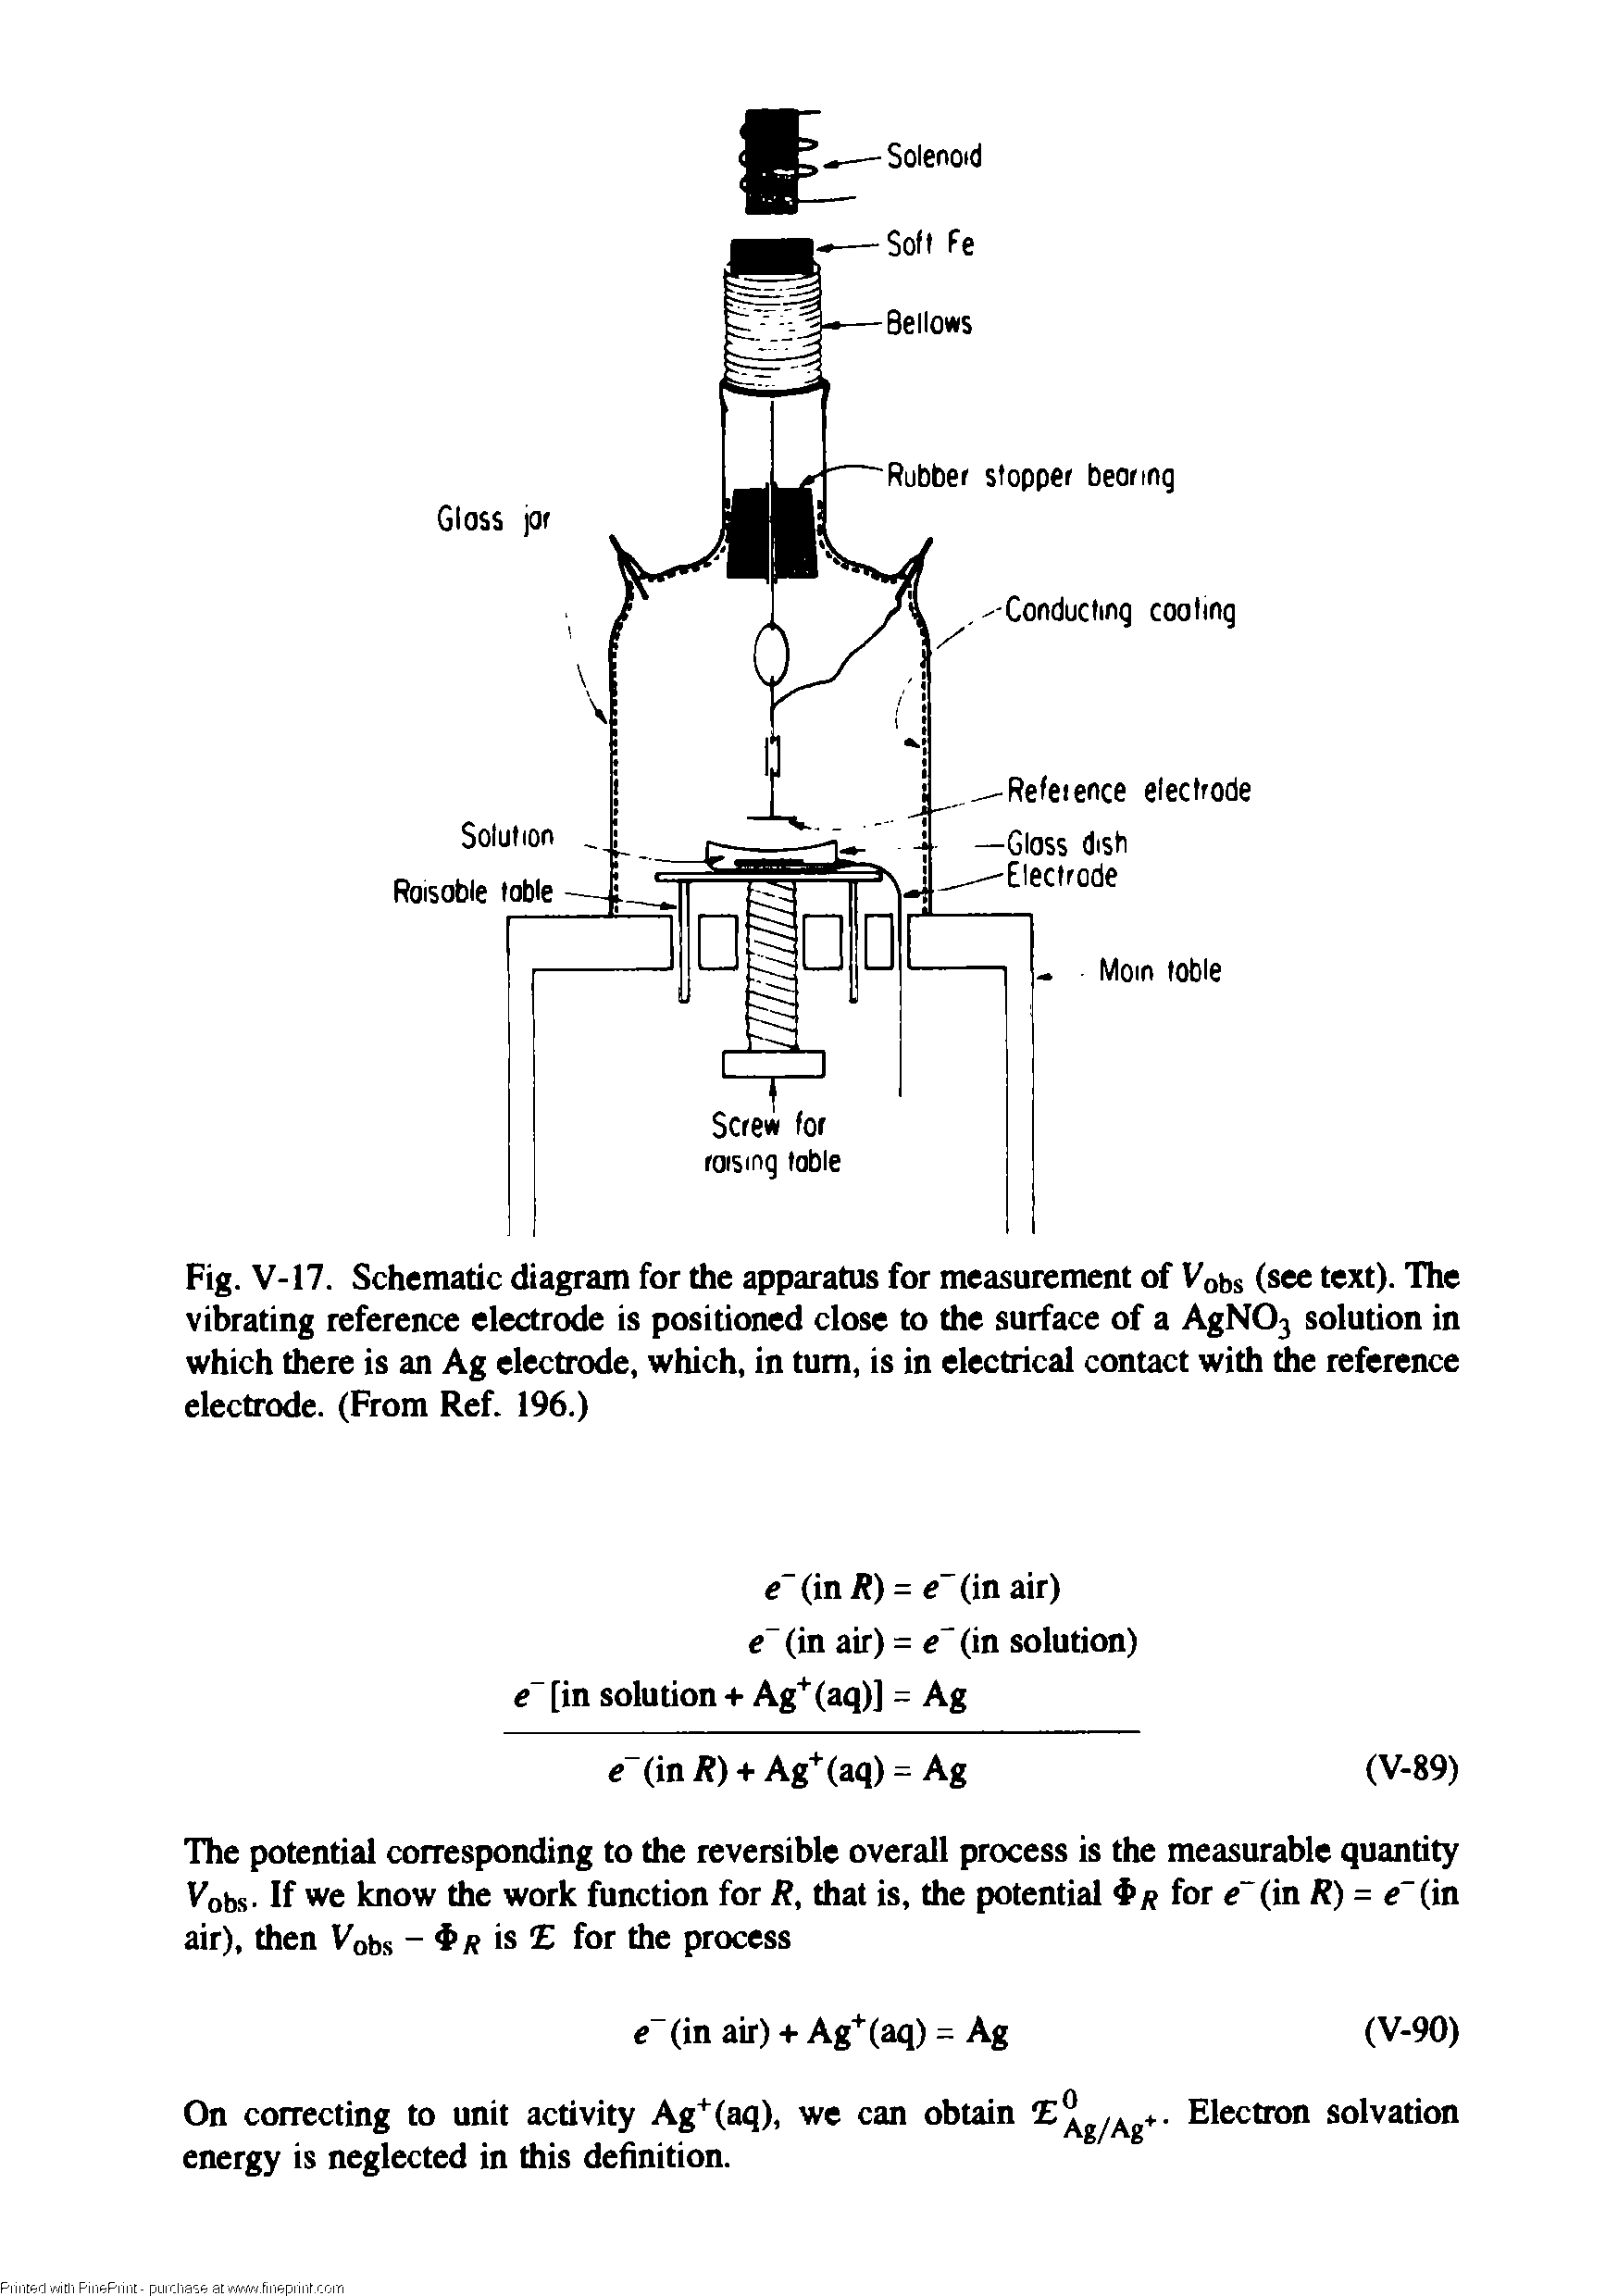 "Fig. V-17. Schematic diagram for the apparatus for measurement of Vobs (see text). The <a href=""/info/reference_electrode_vibrating"">vibrating reference electrode</a> is positioned close to the surface of a AgN03 solution in which there is an Ag electrode, which, in turn, is in <a href=""/info/electrical_contacts"">electrical contact</a> with the <a href=""/info/reference_electrodes"">reference electrode</a>. (From Ref. 196.)"